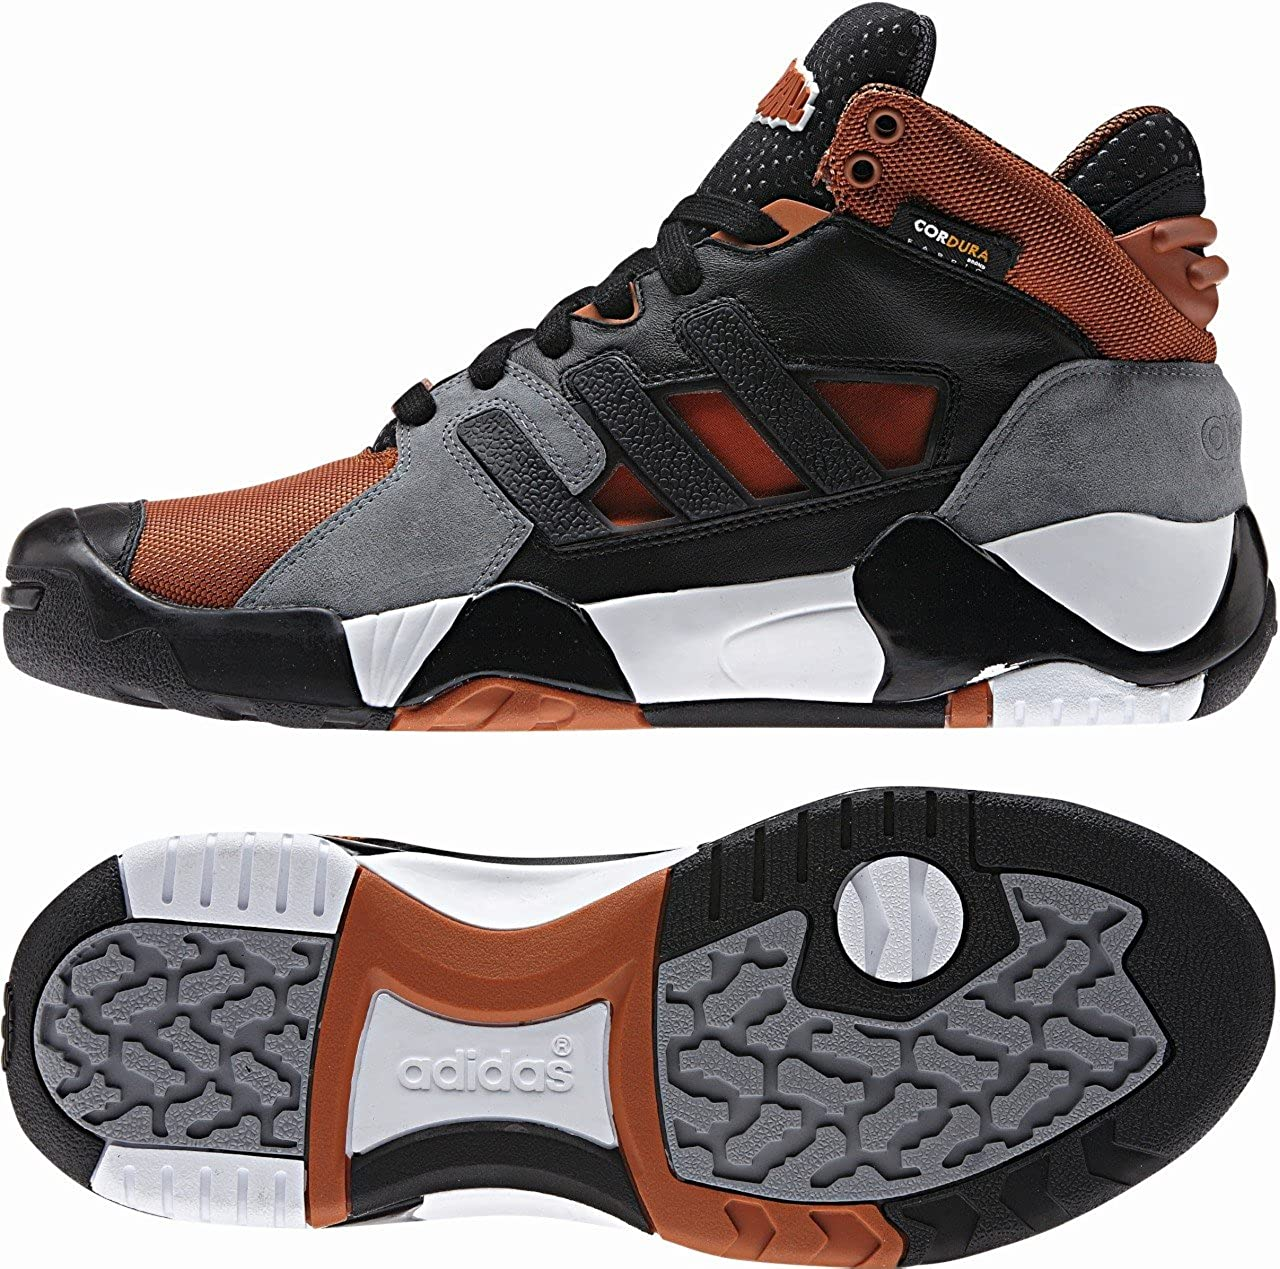 Adidas Originals Streetball 1 5 Hi Basketball Trainers Gray